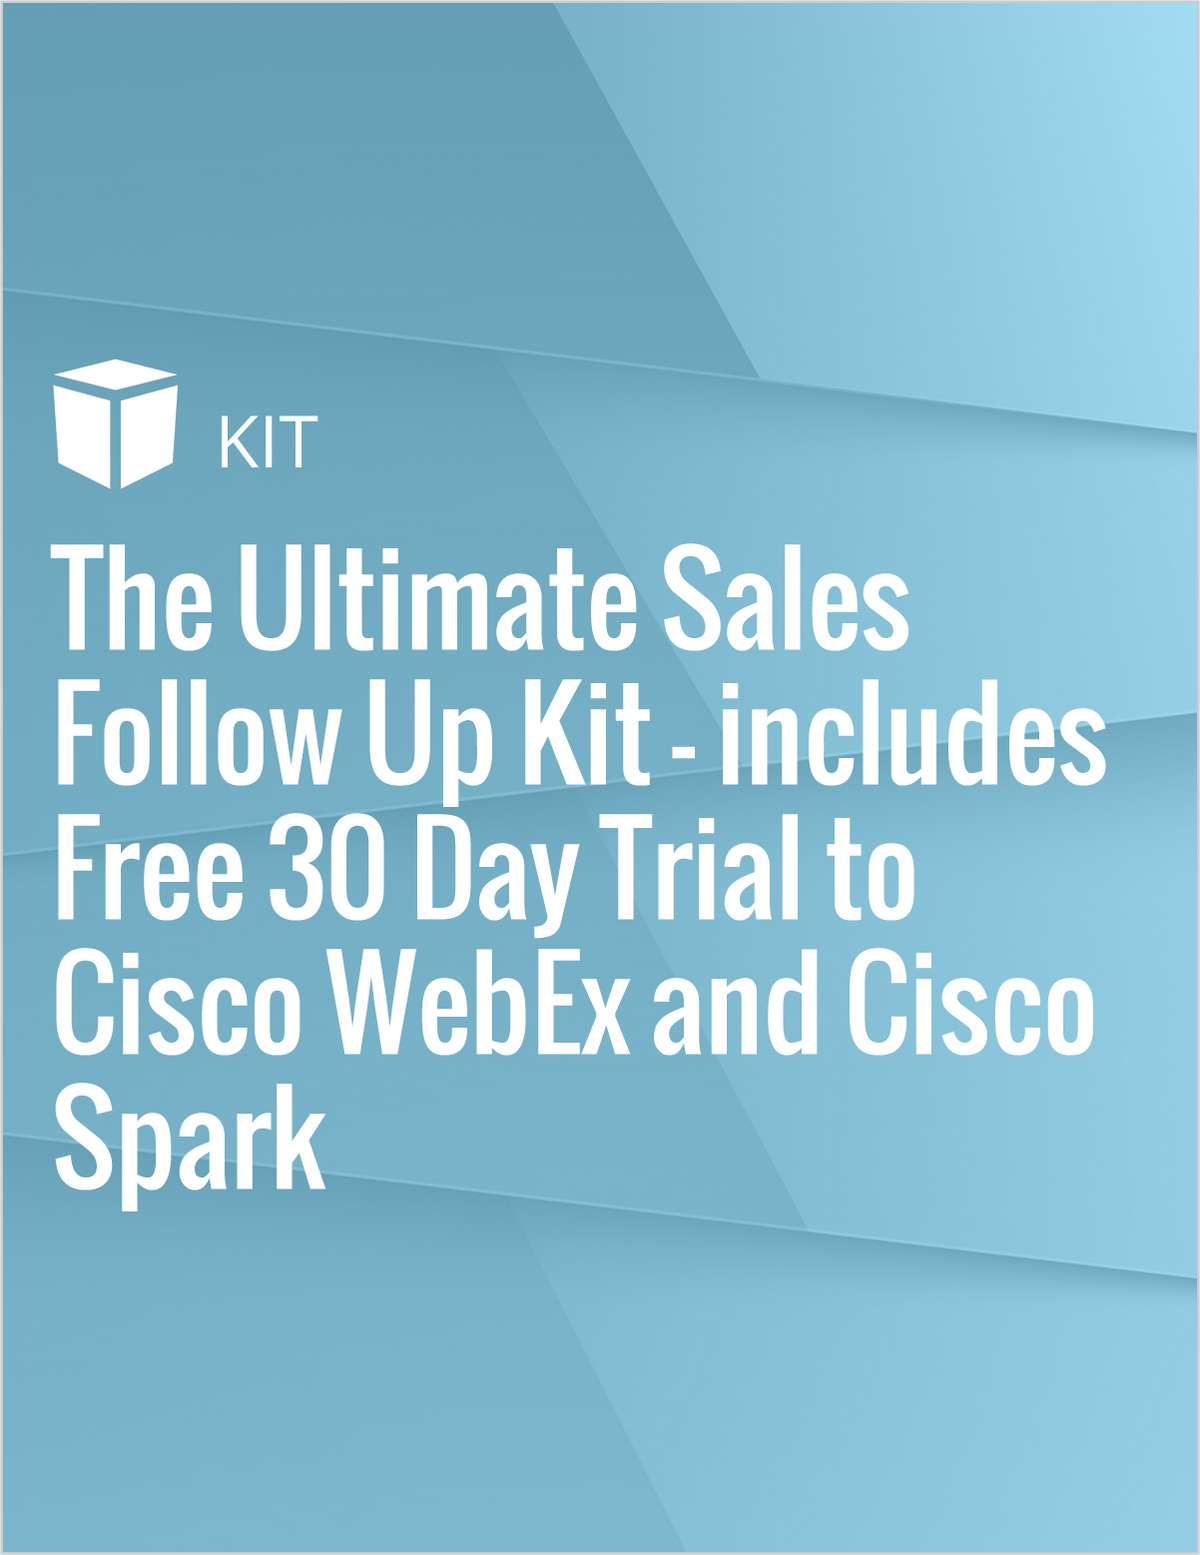 The Ultimate Sales Follow Up Kit - includes Free 30 Day Trial to Cisco WebEx and Cisco Spark‎